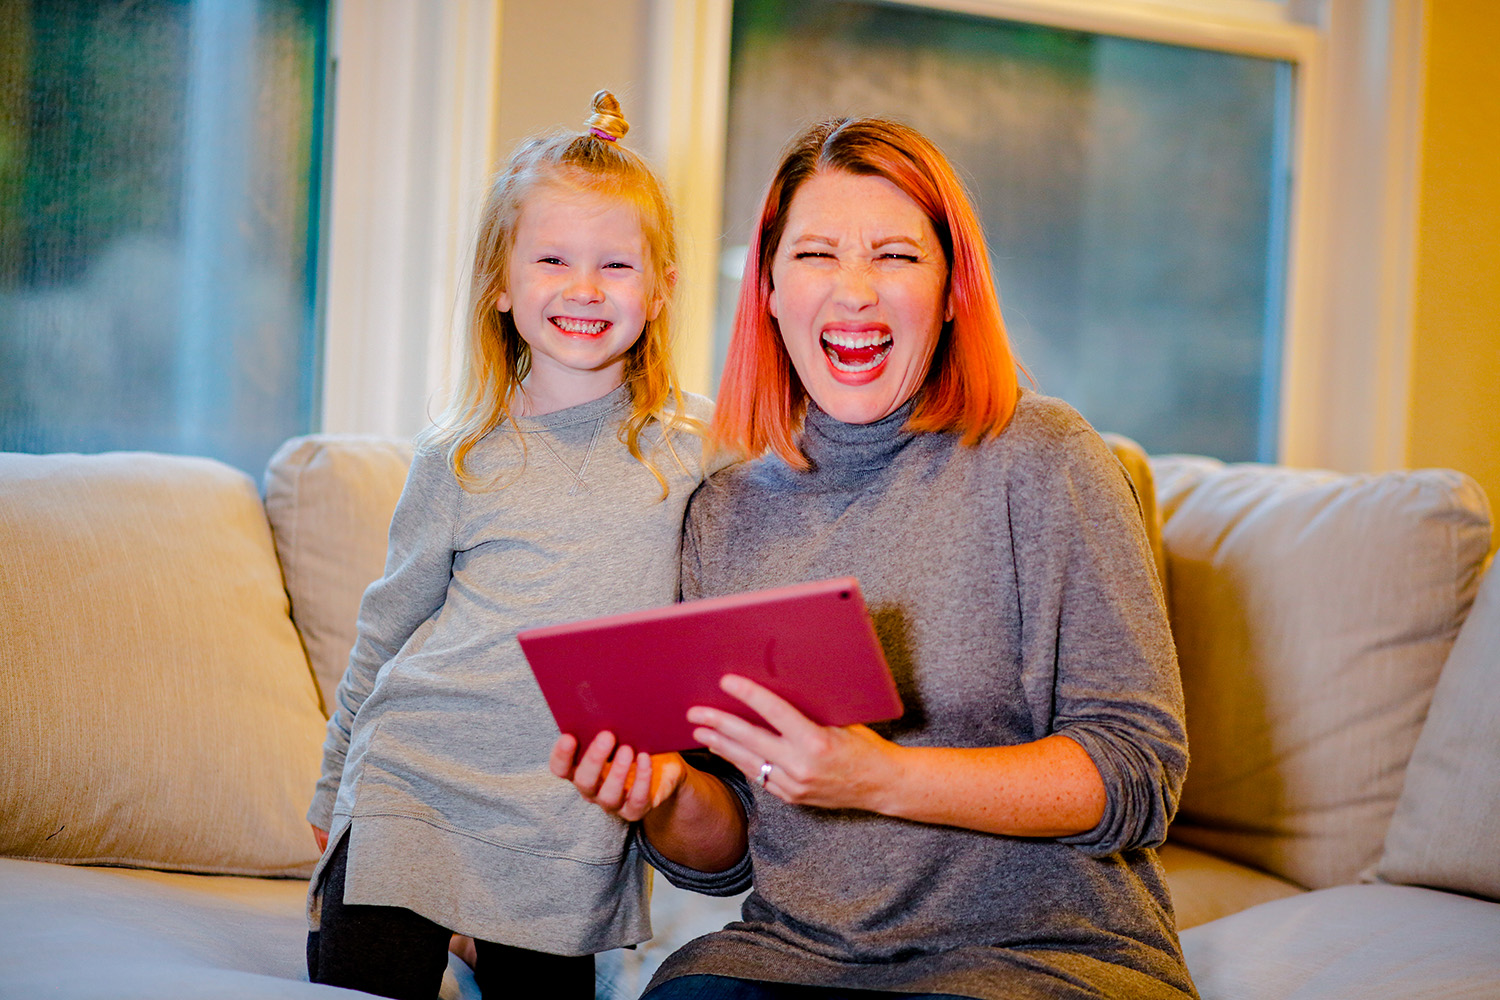 Let's talk about Healthy Screen Time.  As a former teacher and a mom, I'm sharing my tips for creating healthy screen time in your household!